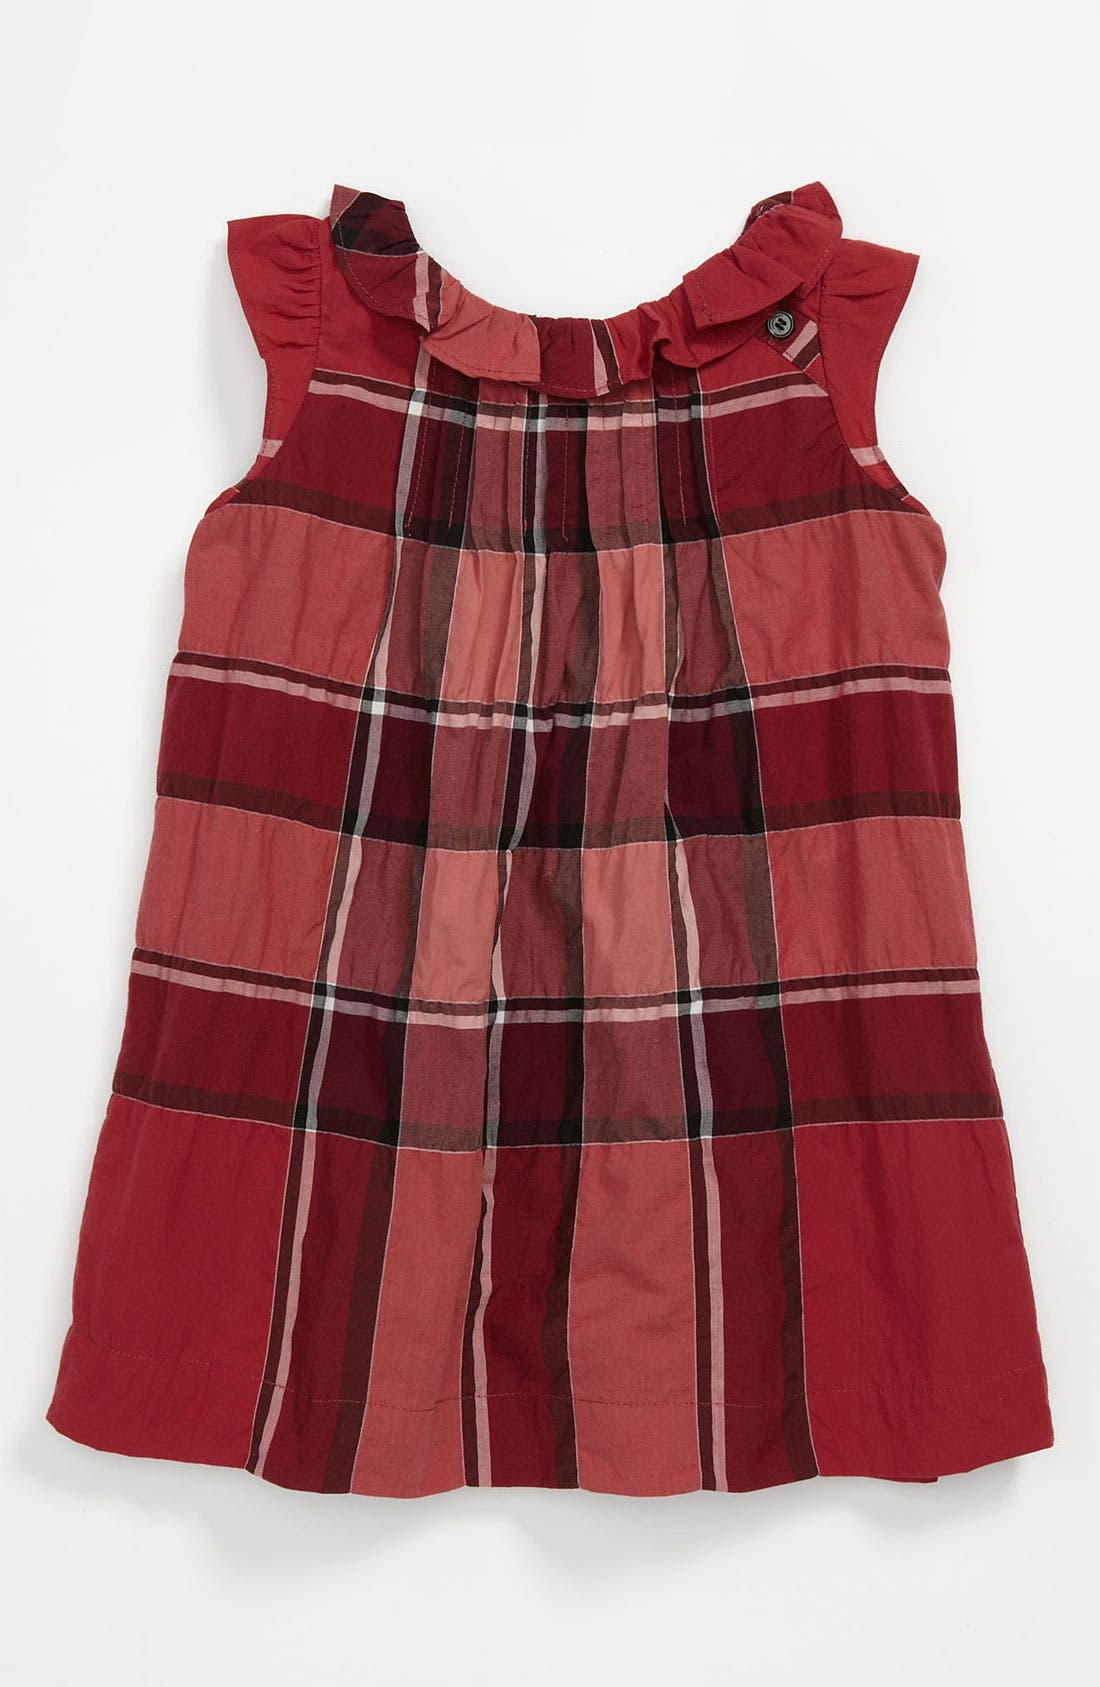 Main Image - Burberry 'Olly' Check Print Dress (Baby)